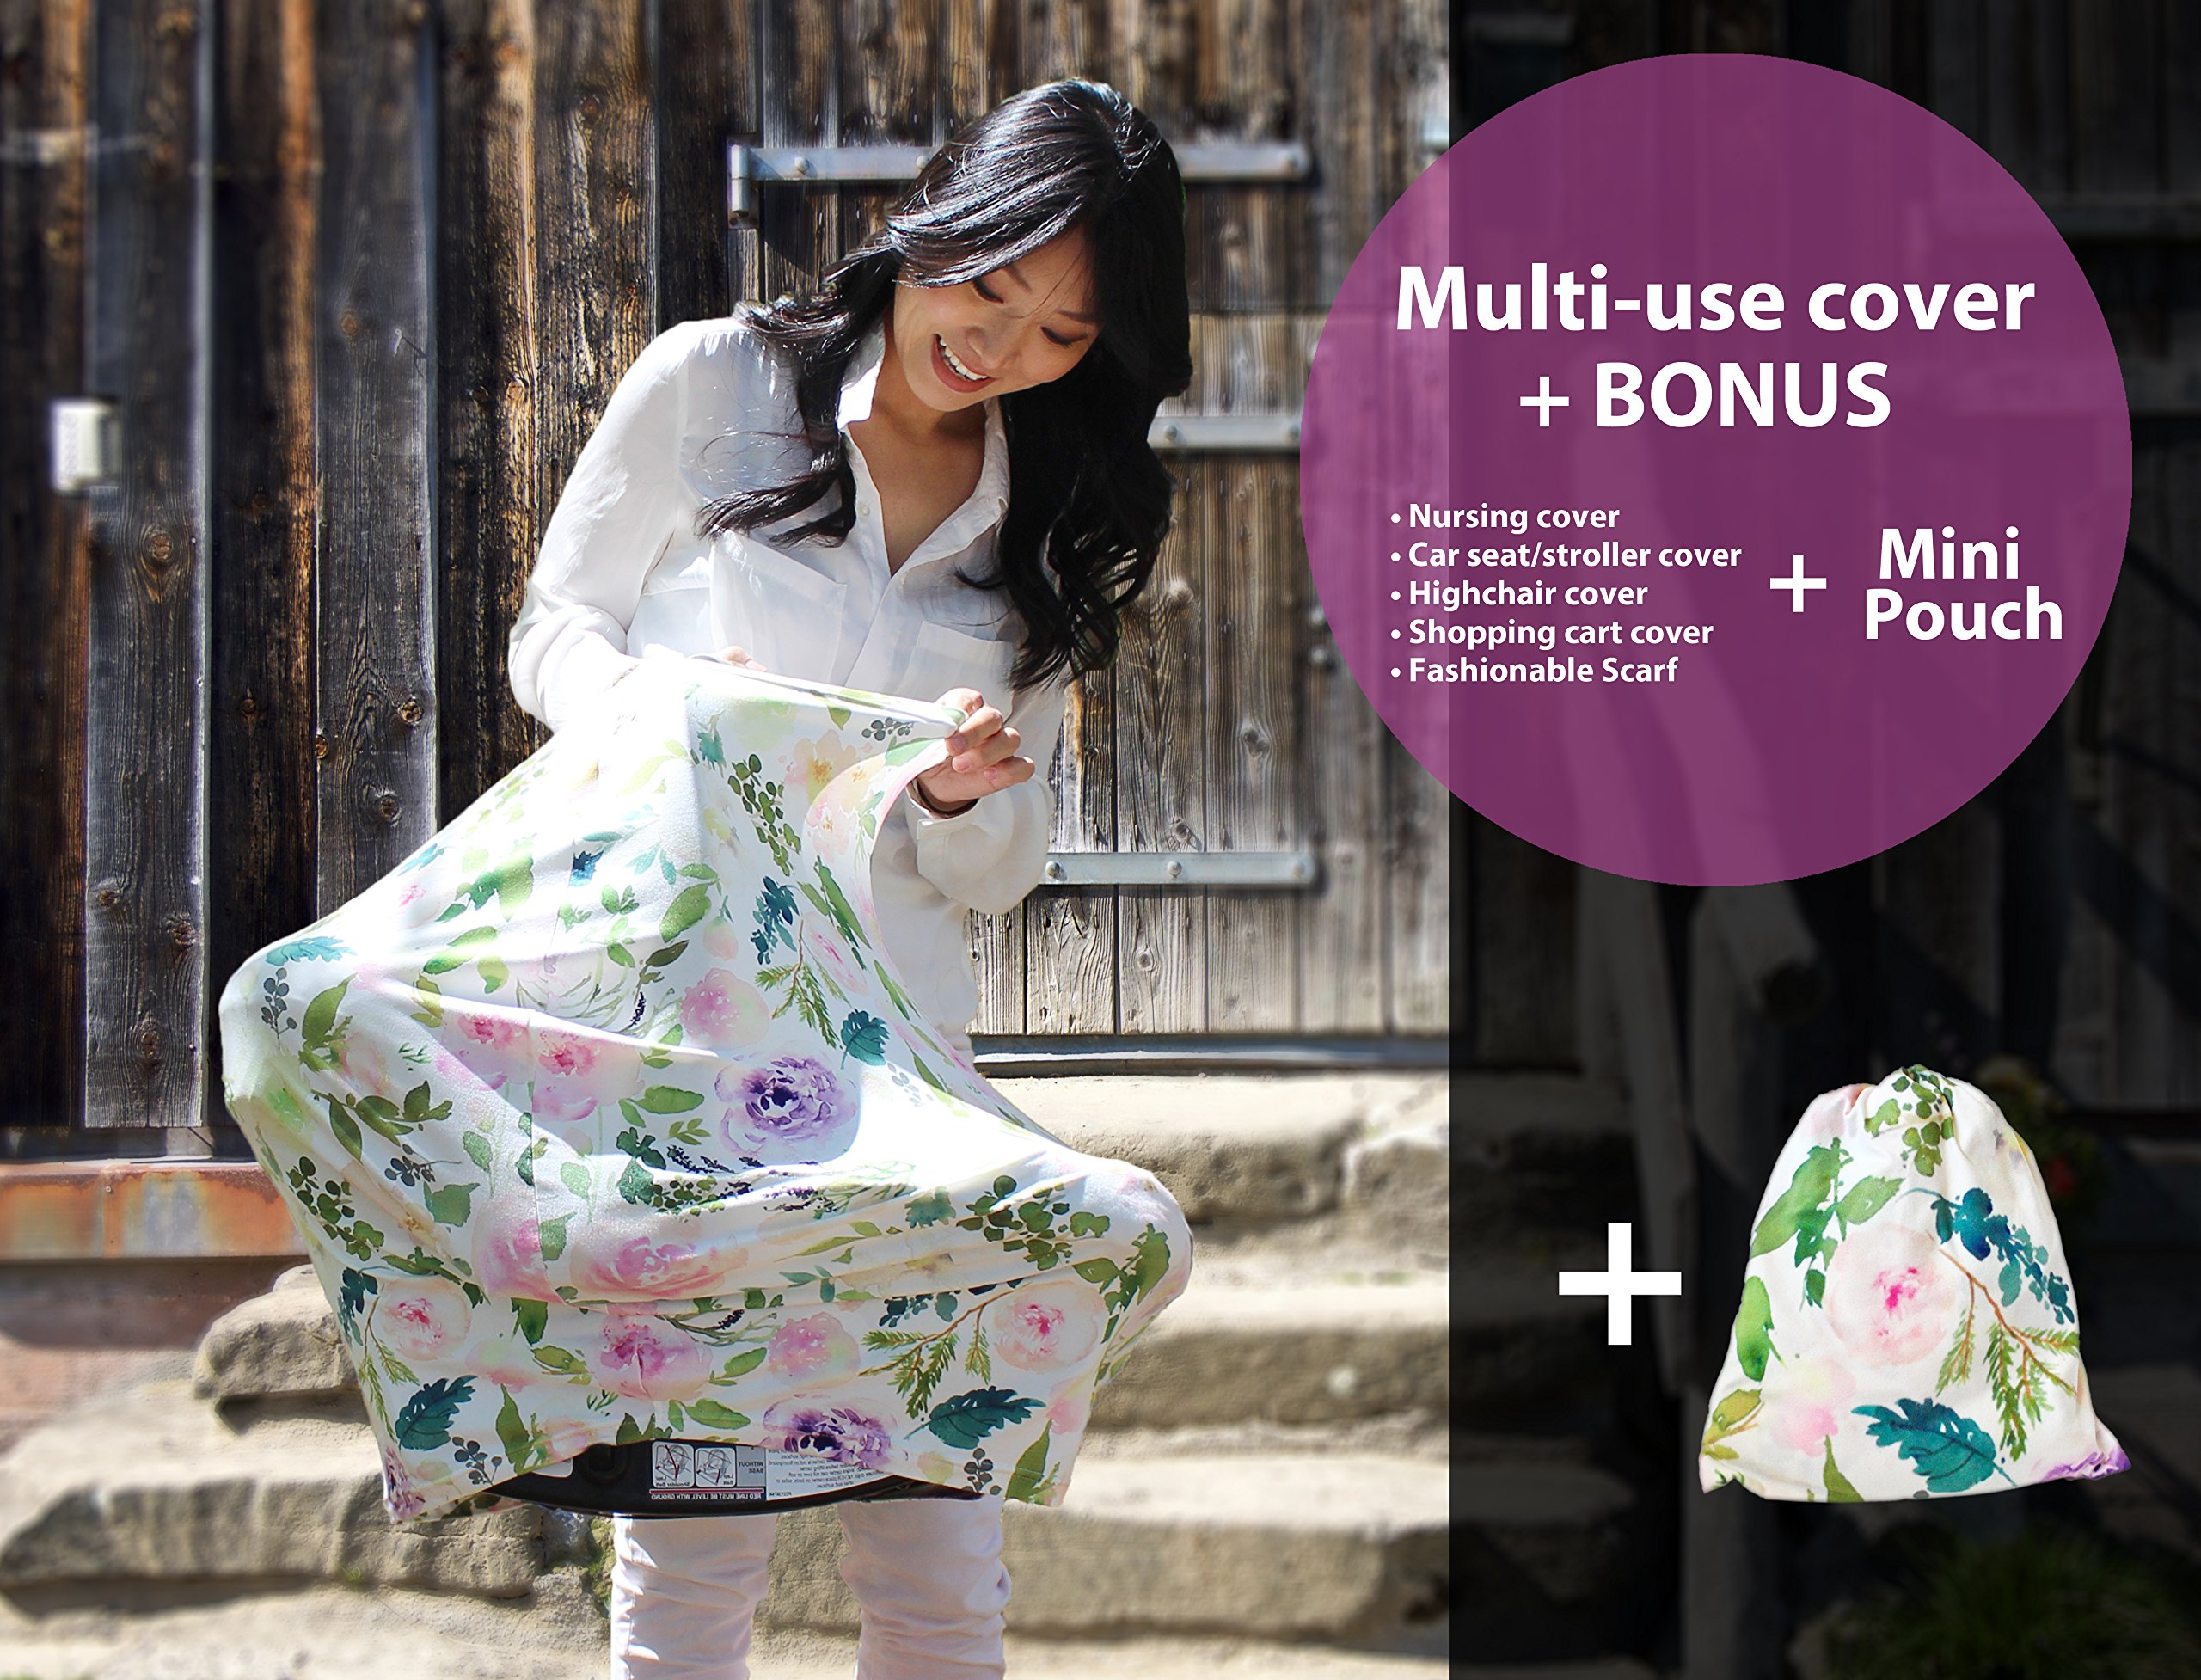 Premium Soft, Stretchy, and Spacious 4 in 1 Multi-Use Cover for Nursing, Baby Car Seat, Stroller, Scarf, and Shopping Cart - Best Gifts by Pobibaby (Allure) by Pobibaby (Image #7)